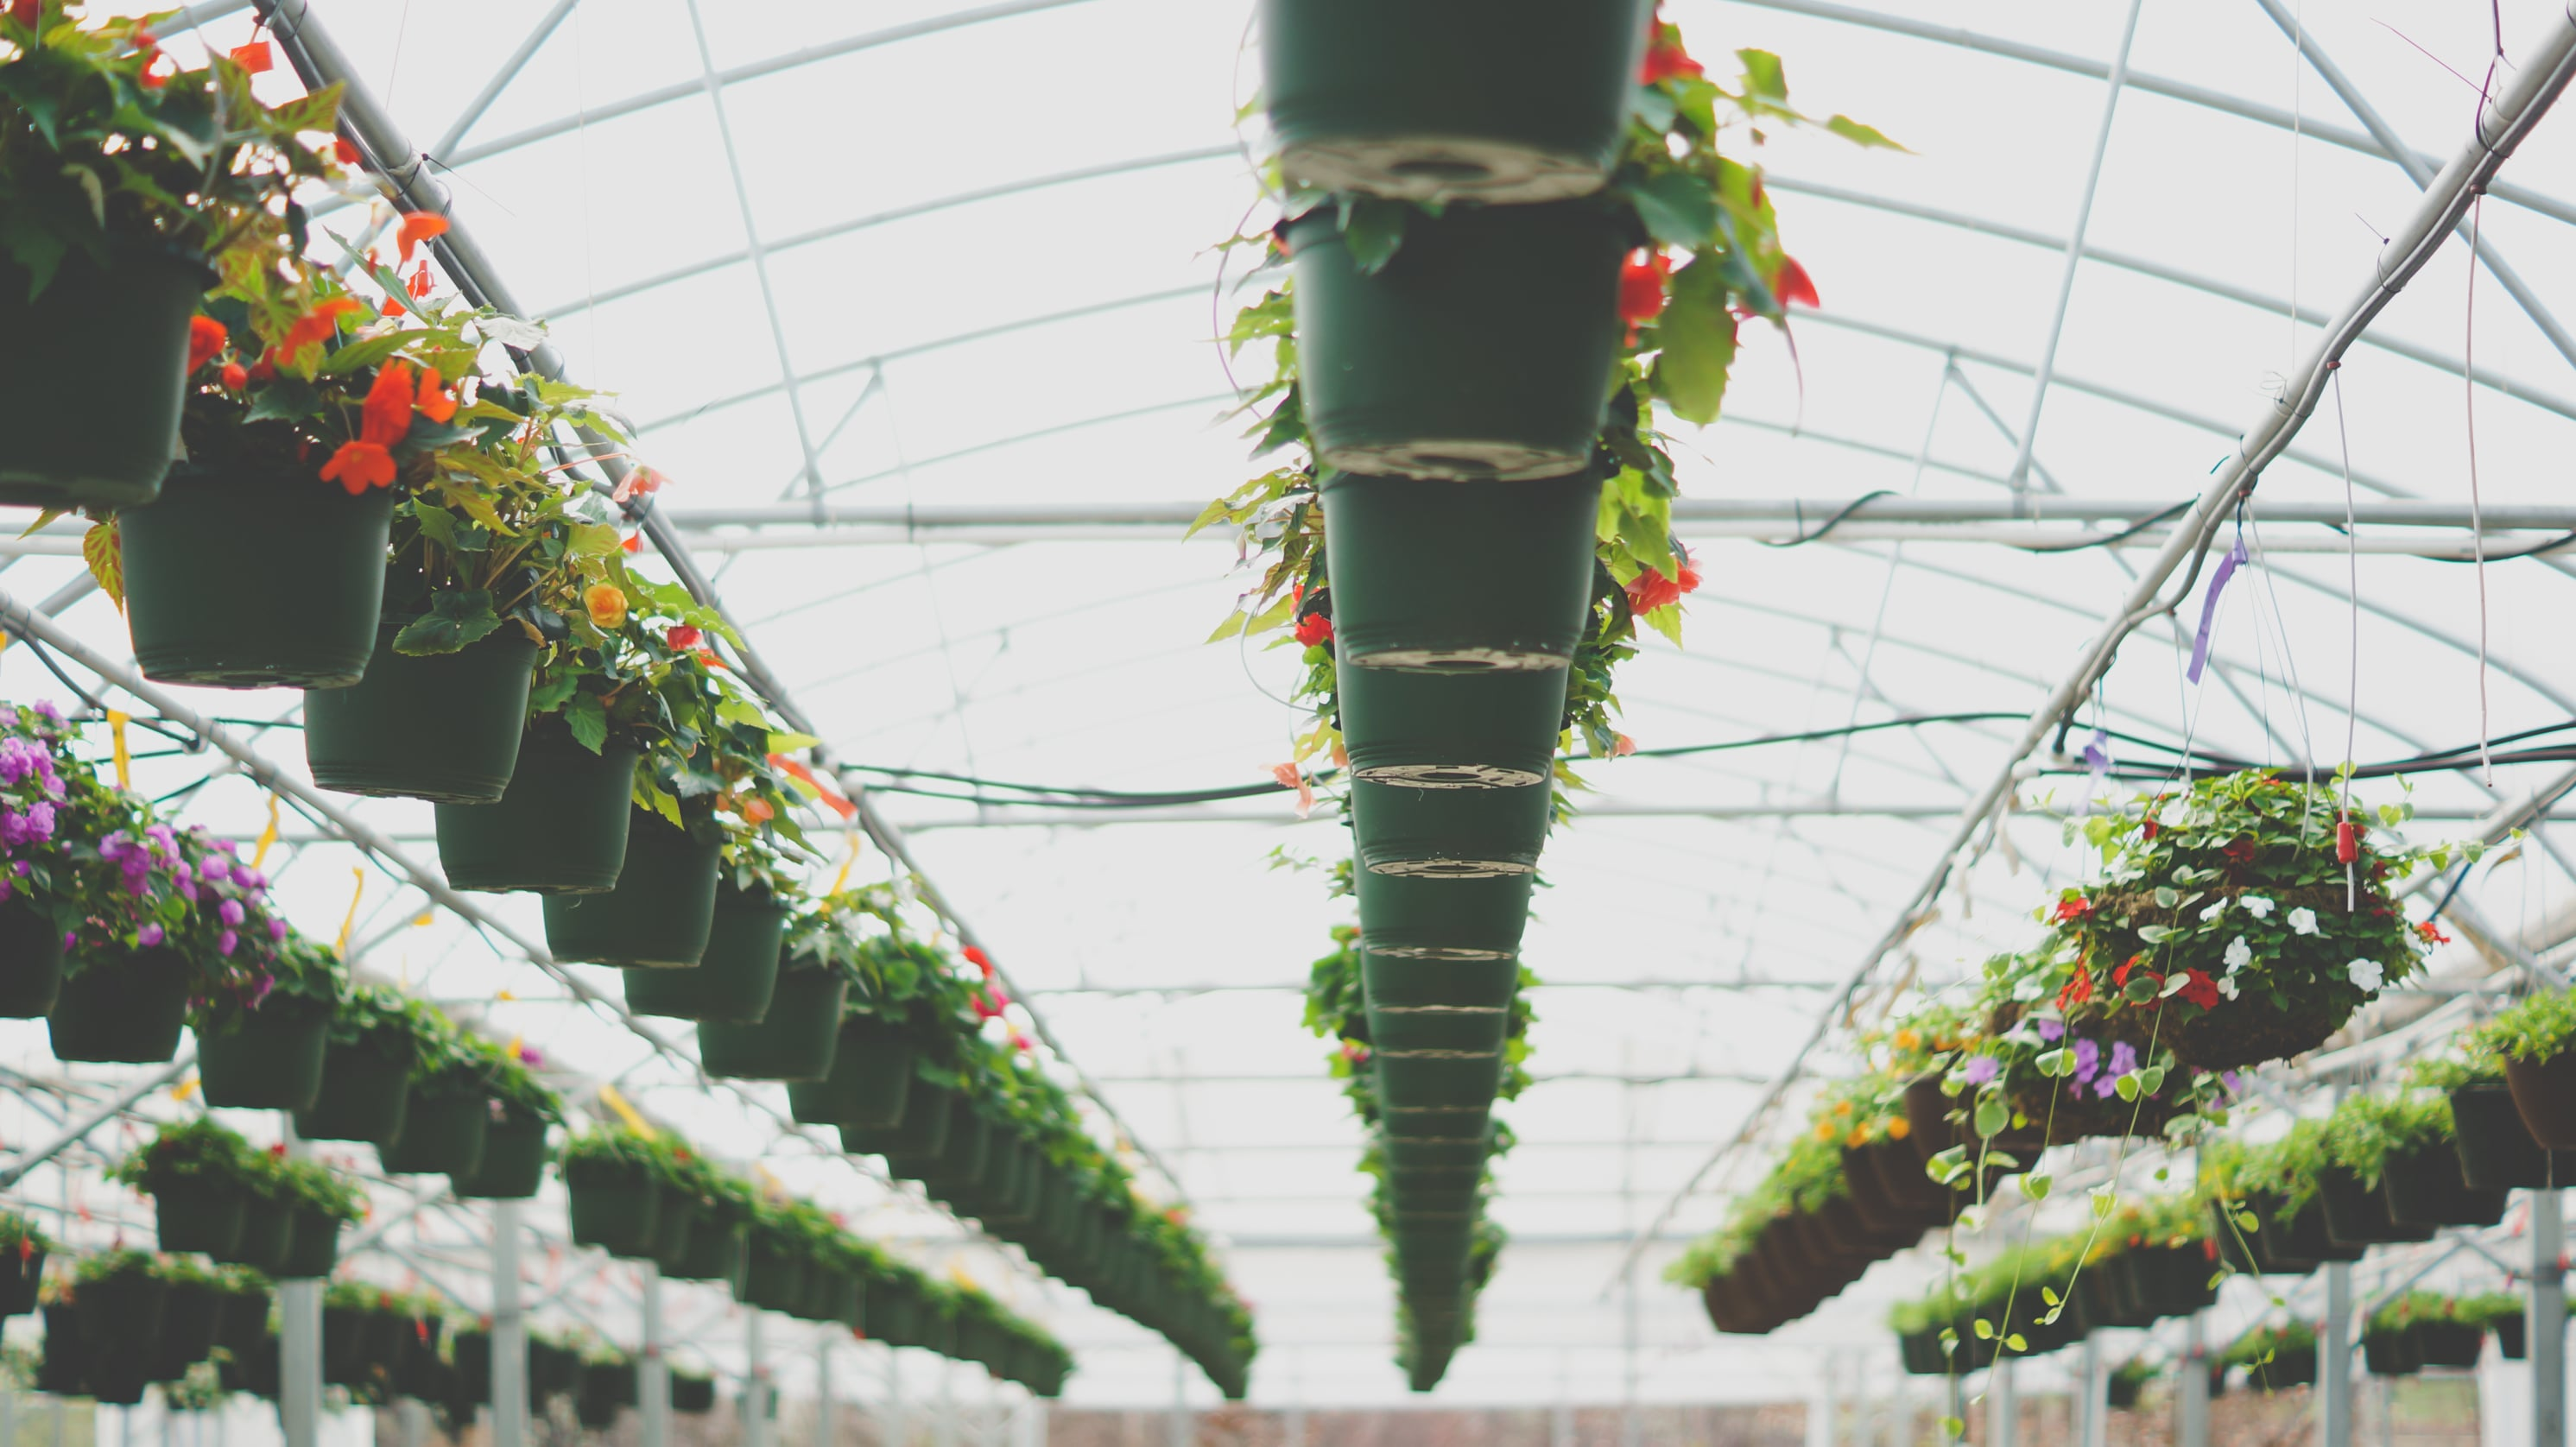 Heat It Up: Build Hotter Greenhouses